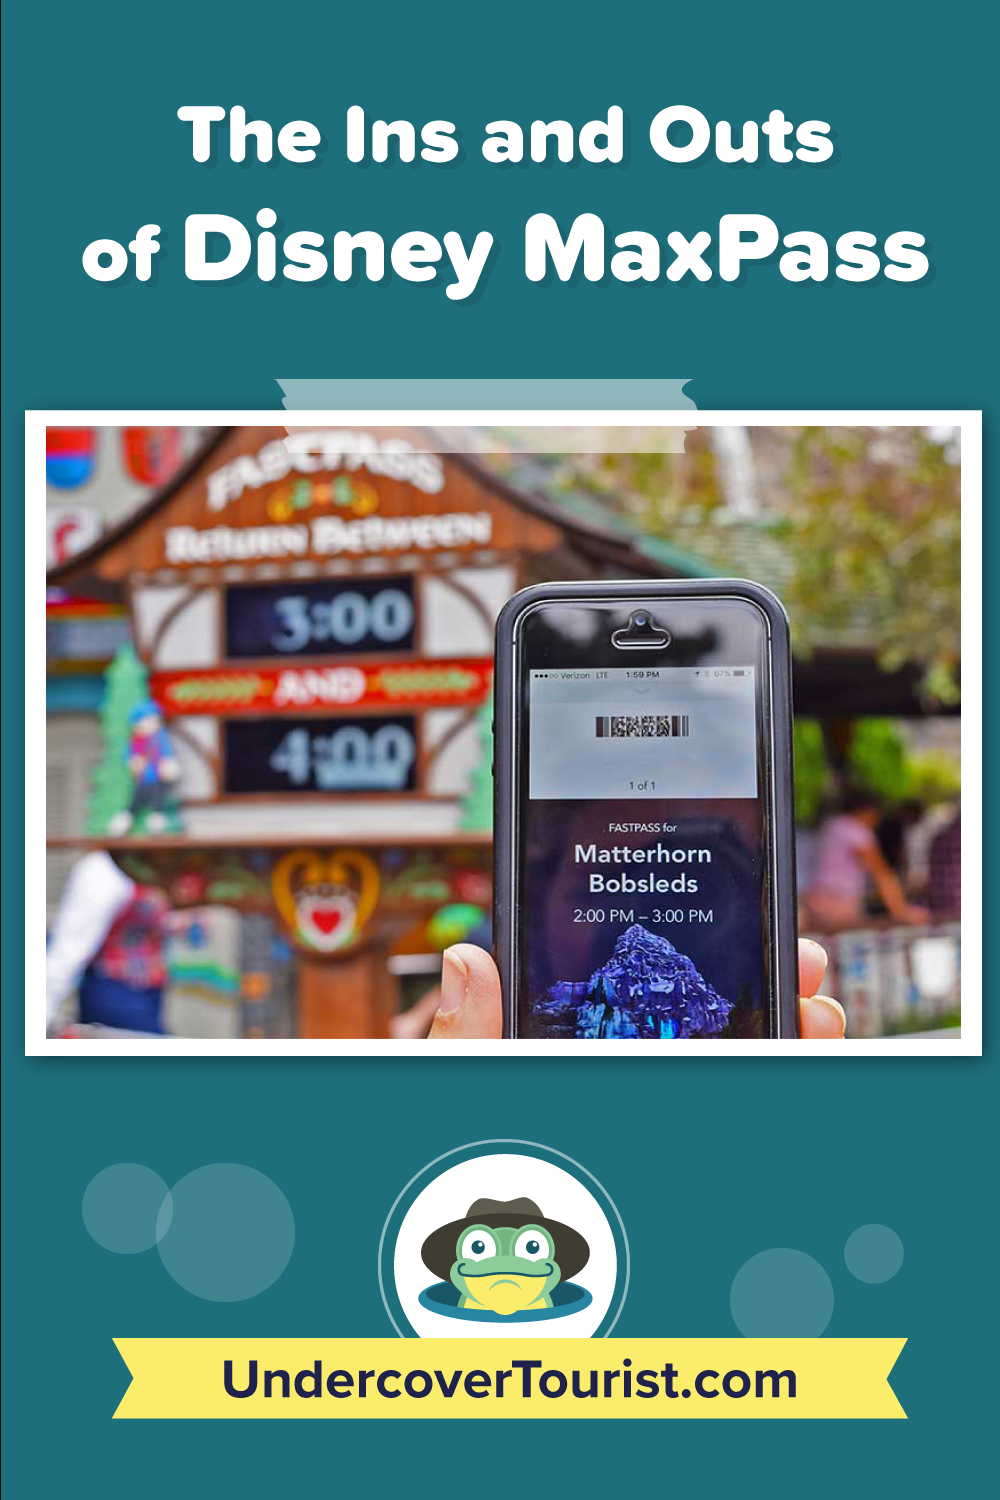 Disney Maxpass — What You Need To Know Before You Go!